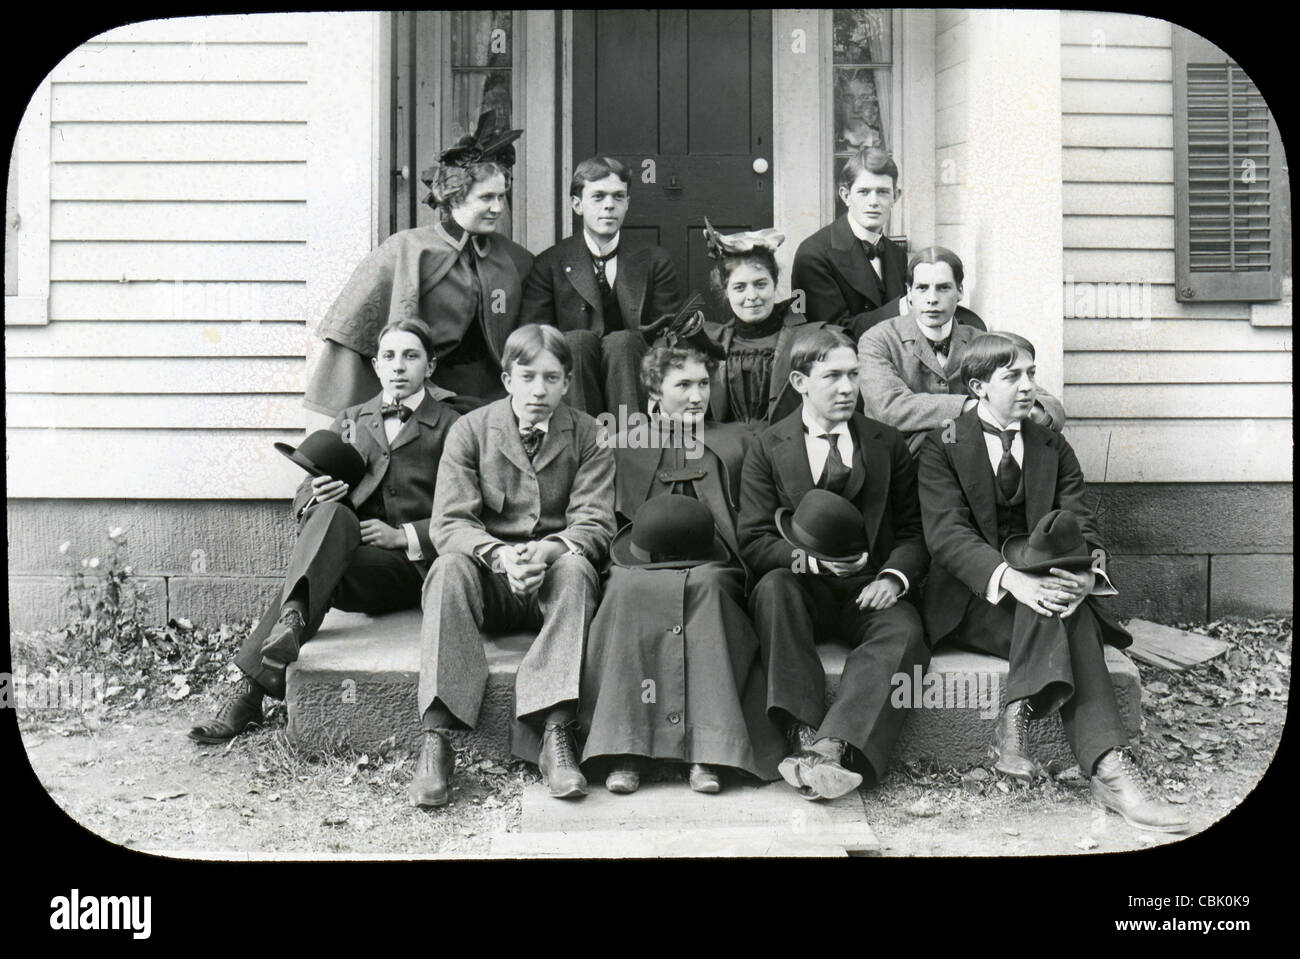 Circa 1900 antique photograph of a group of young men and women. Stock Photo